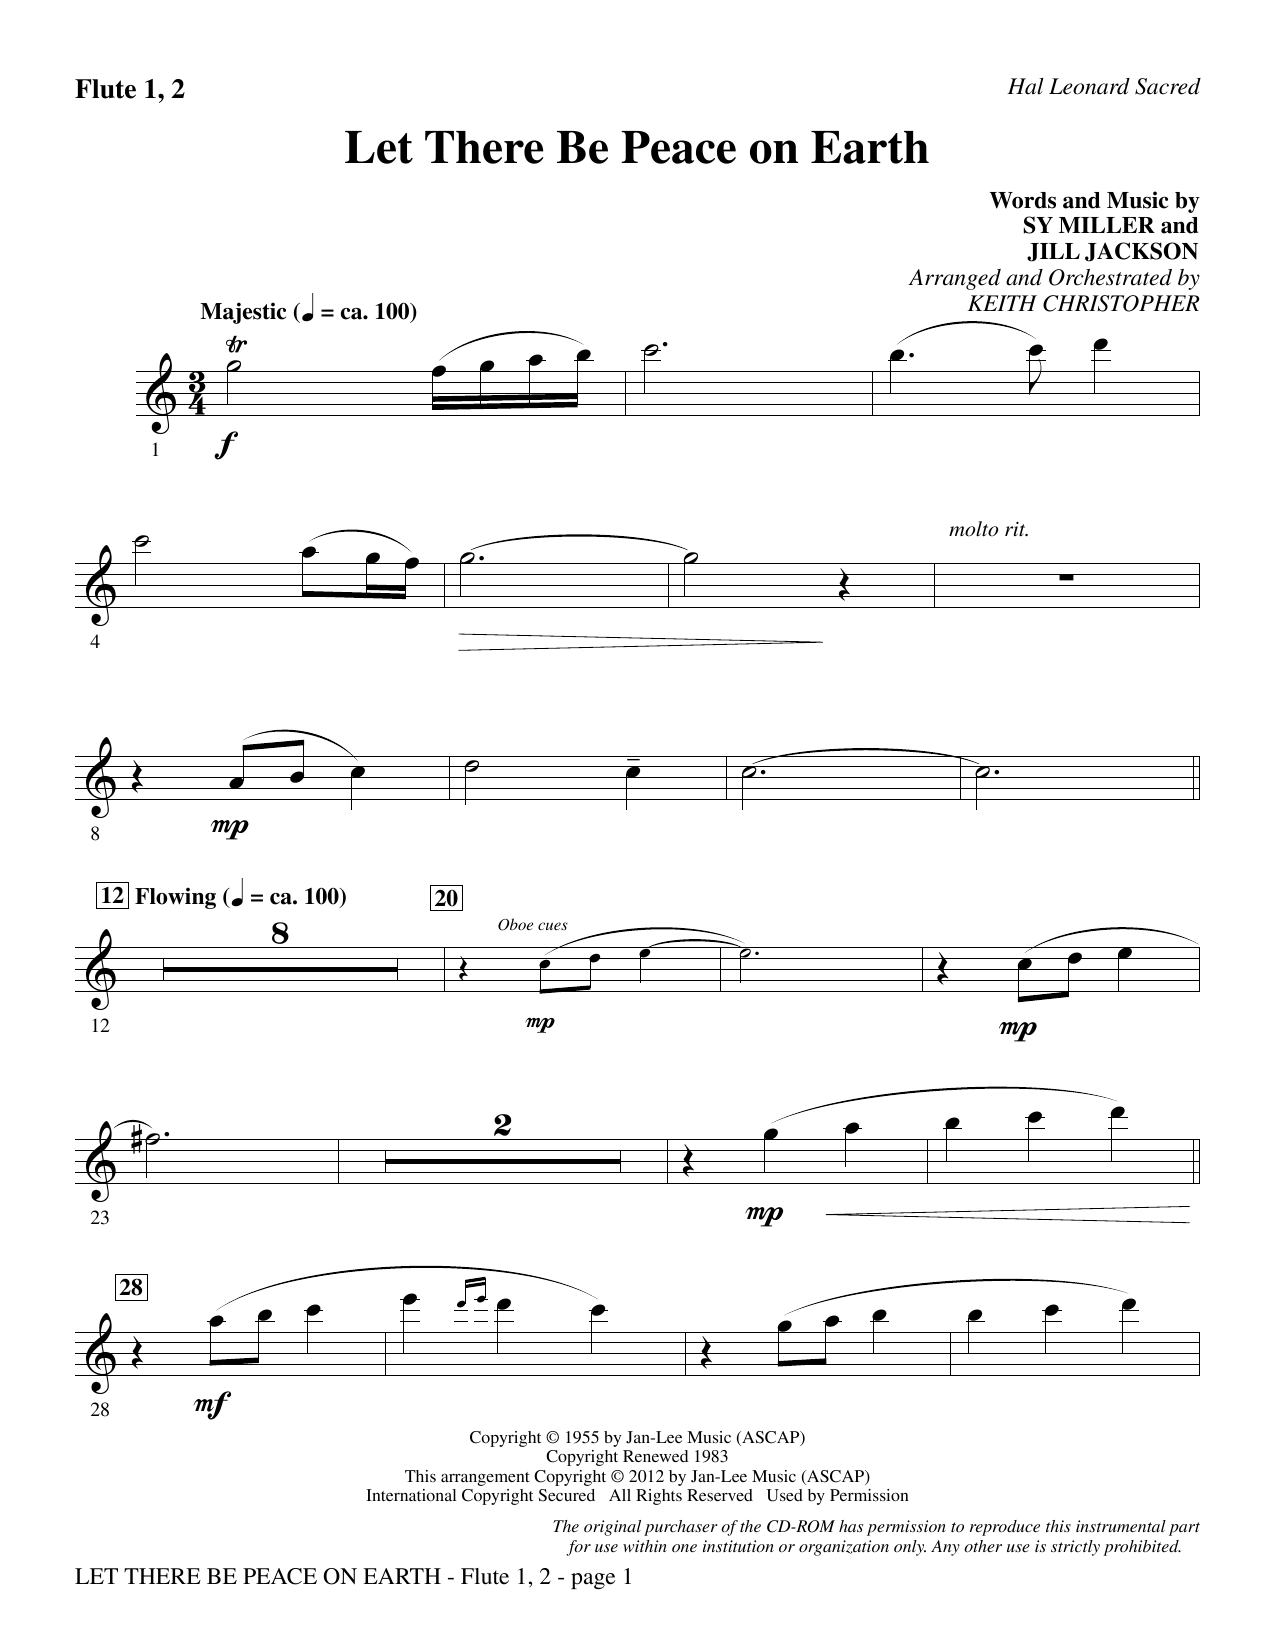 Let There Be Peace On Earth - Flute 1 & 2 Sheet Music